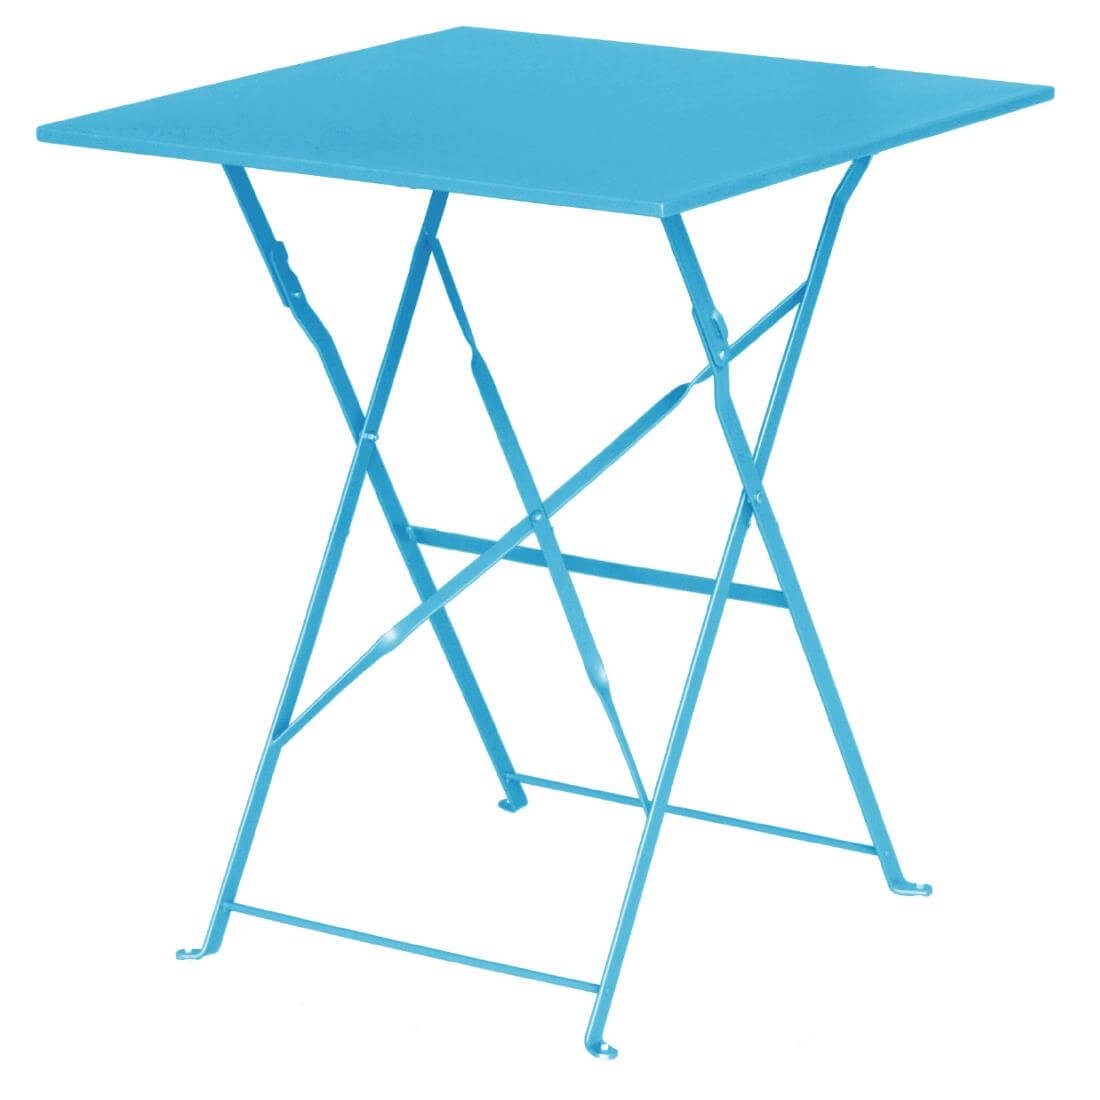 Steel Folding Table Square - Blue